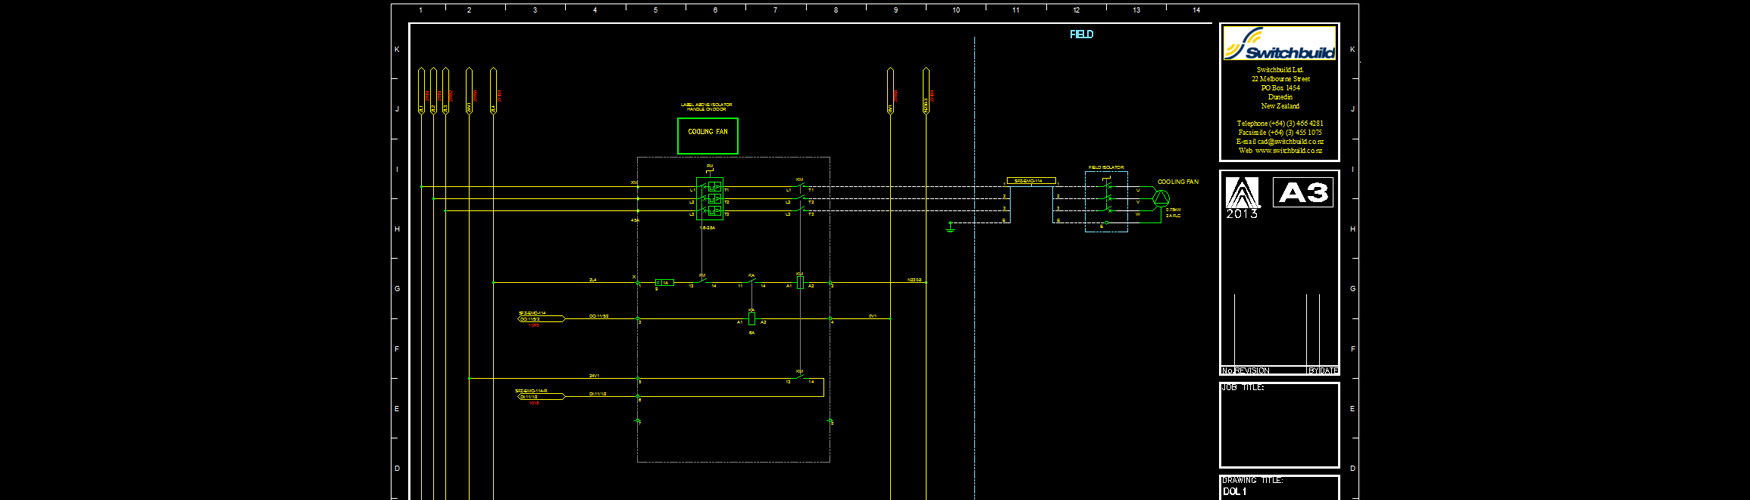 Electrical Drafting Acad Switchbuild Schematic Autocad